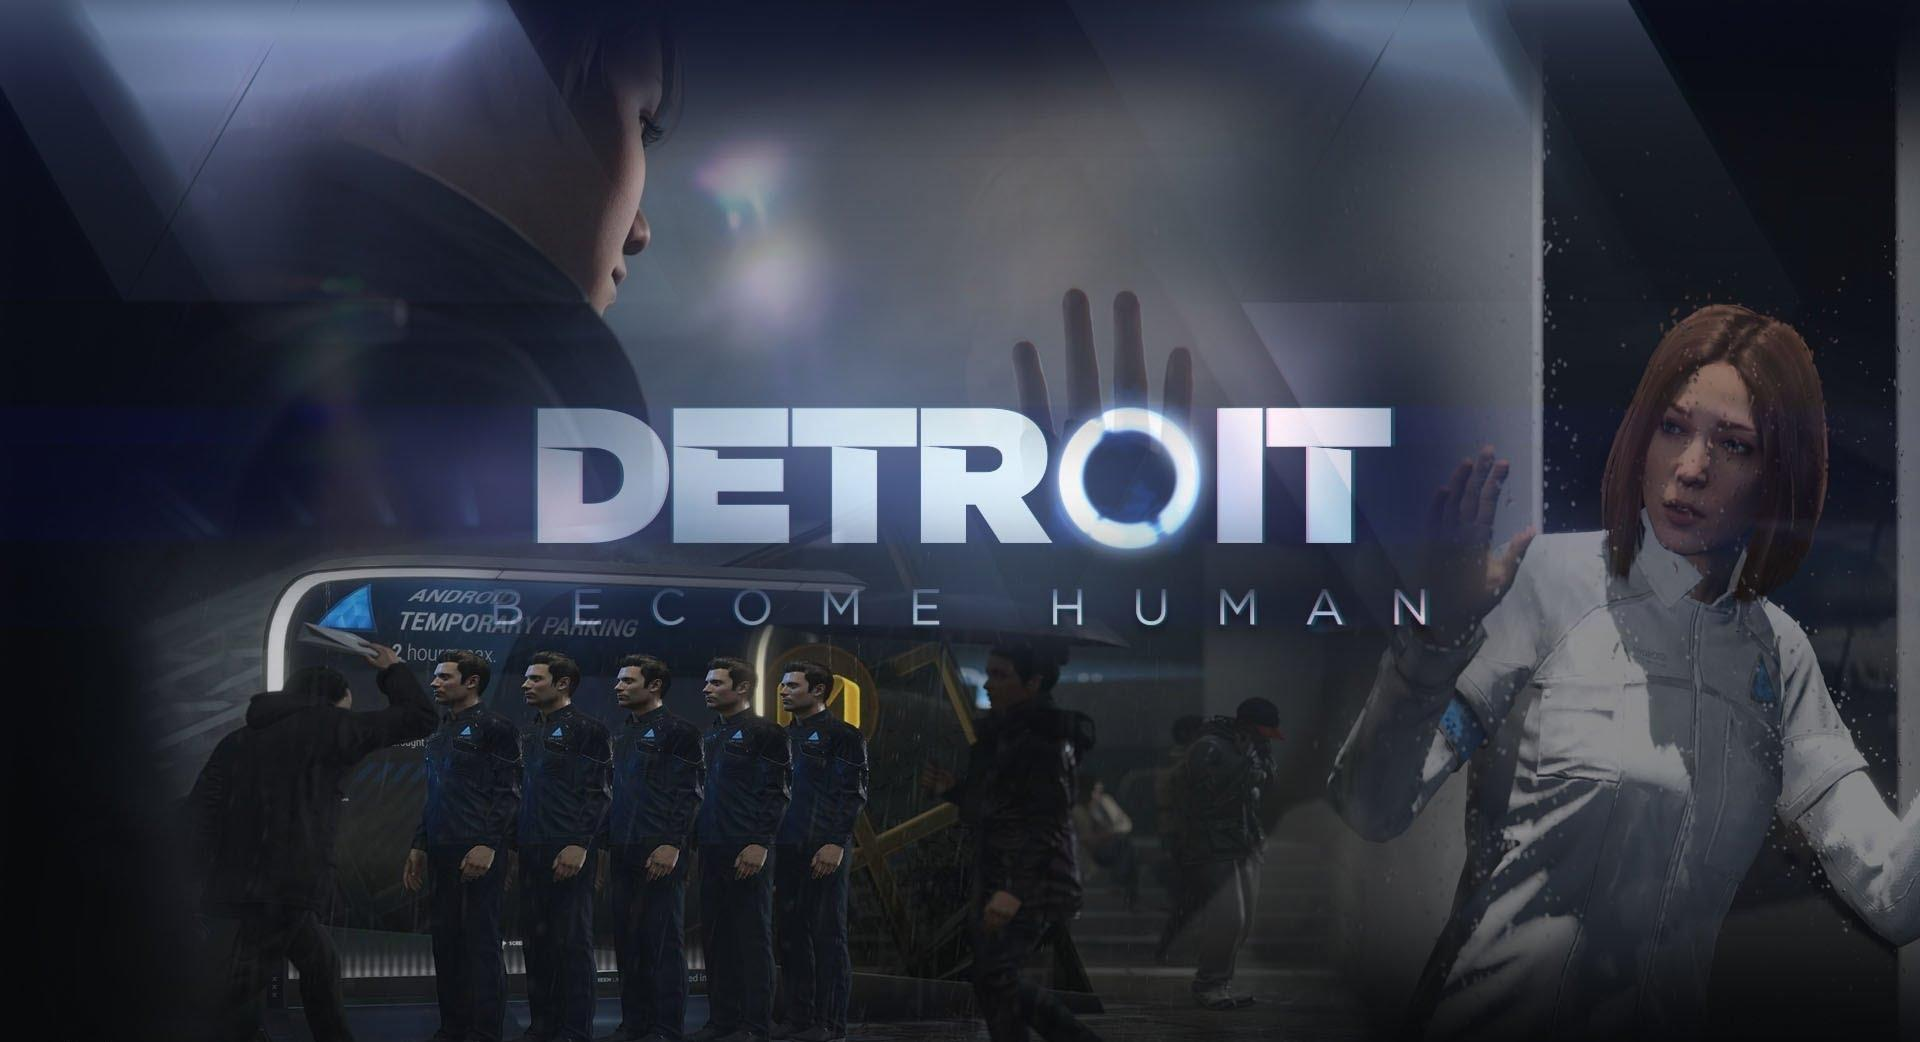 Do you like Detriot:Becoming Human?